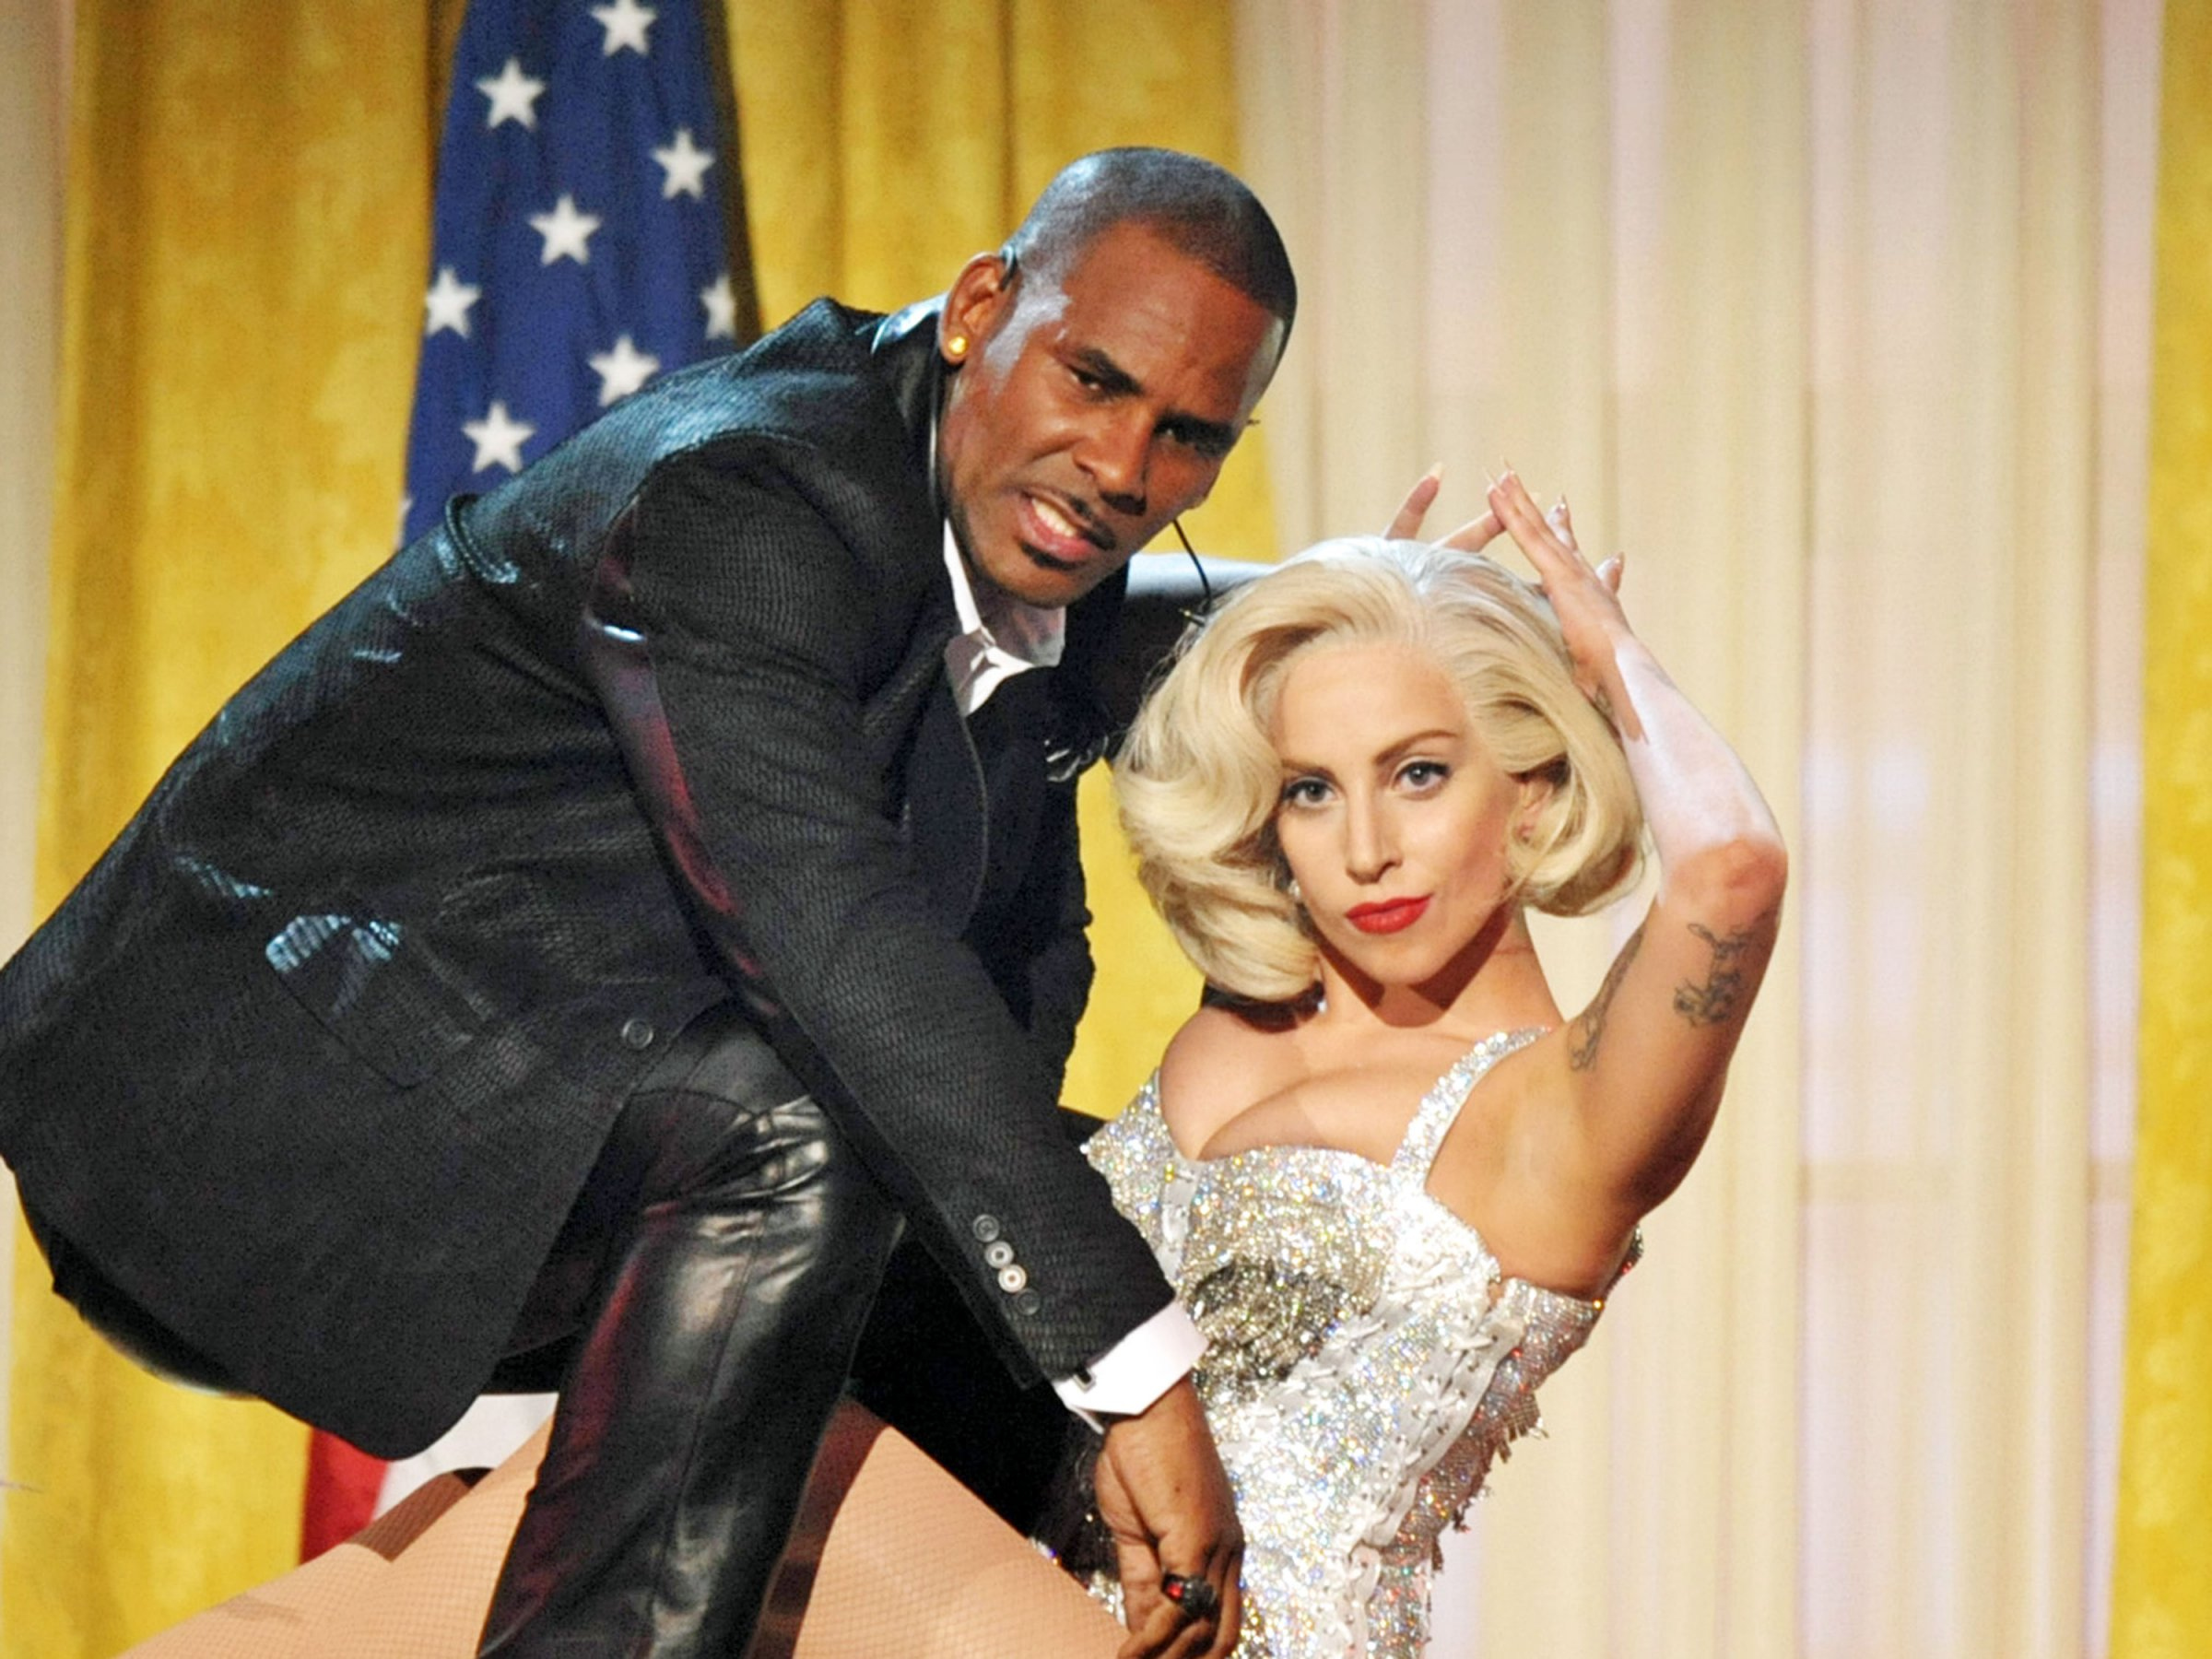 Lady Gaga plans to take down song she made with R.Kelly from iTunes